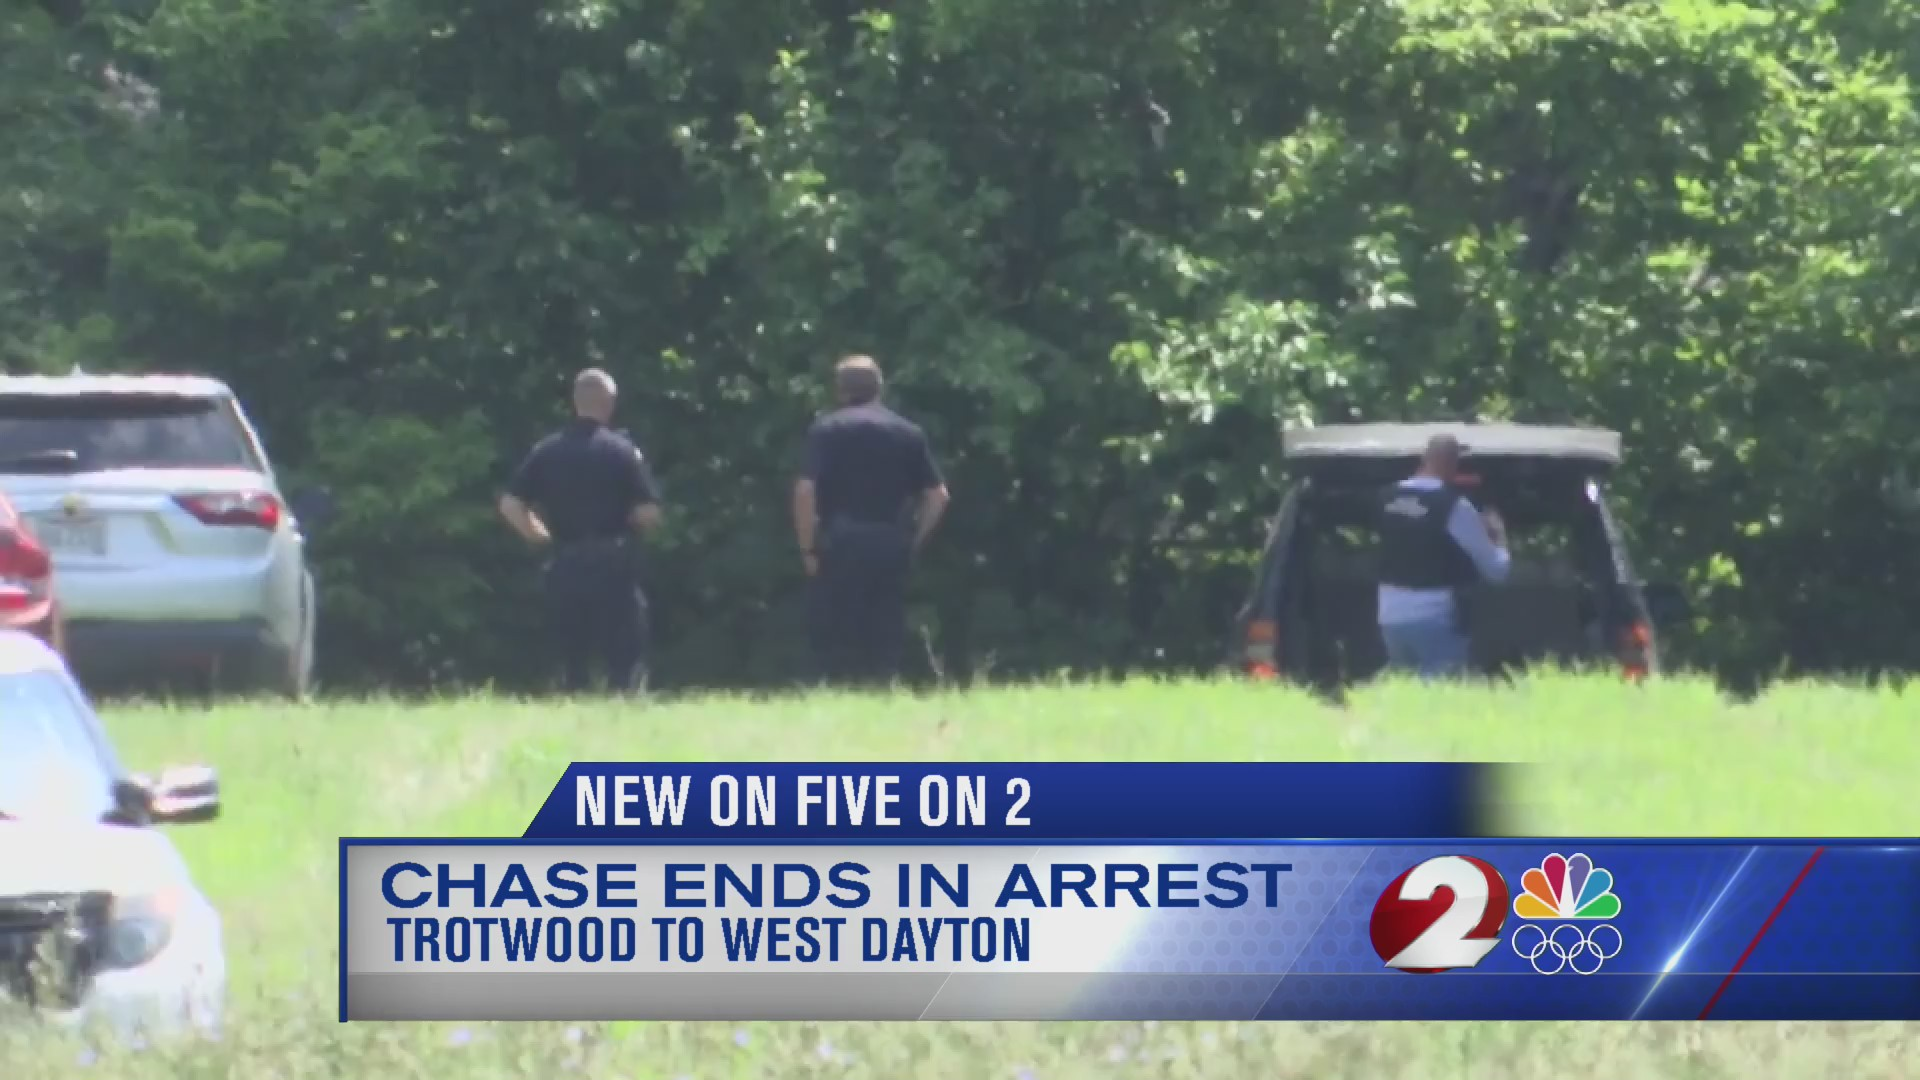 Chase ends in arrest